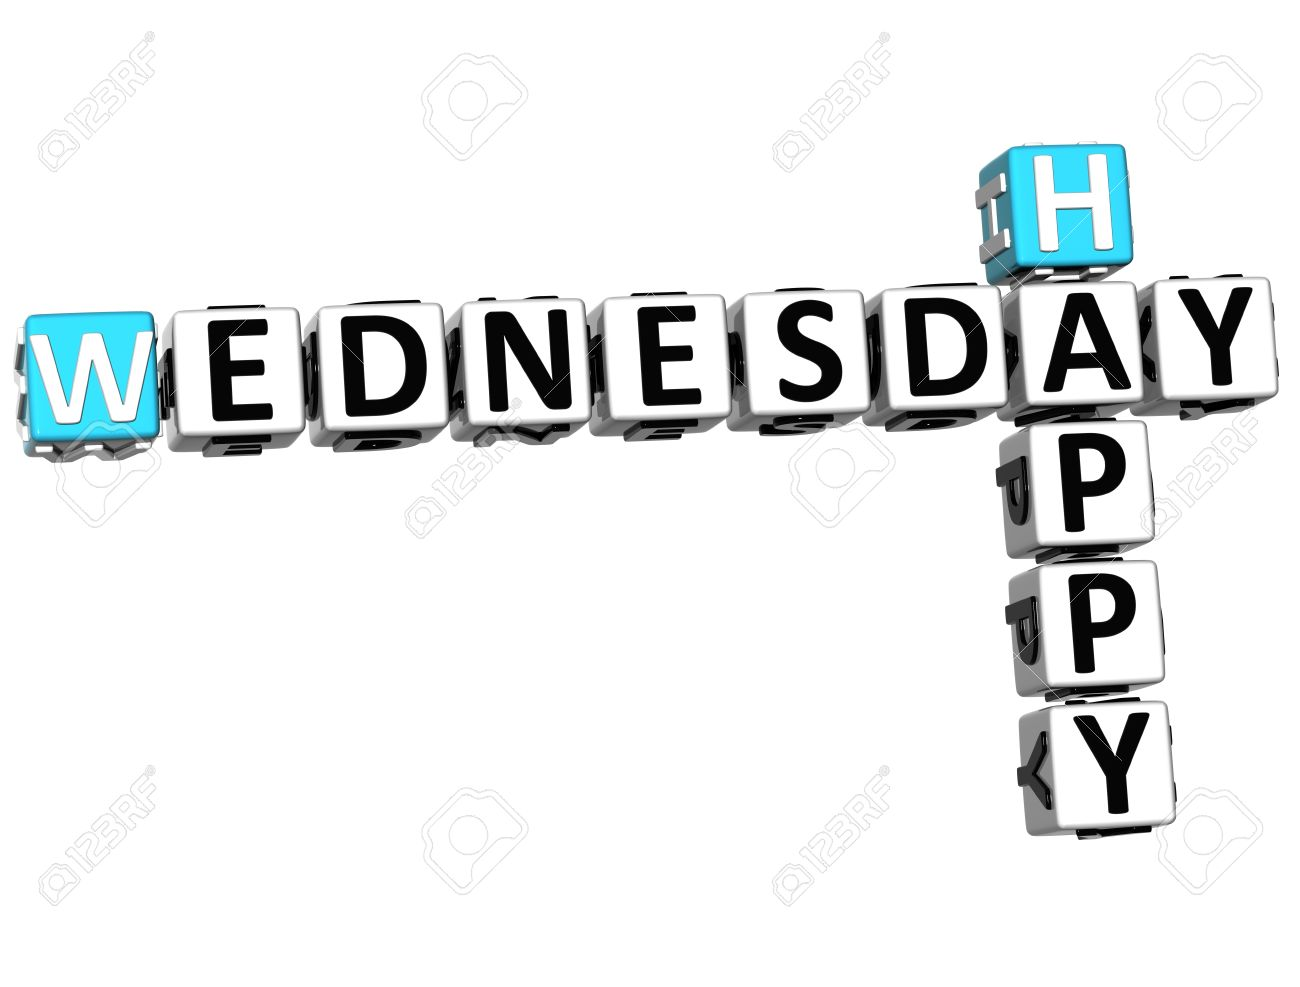 3D Happy Wednesday Crossword on white background Stock Photo - 14320437